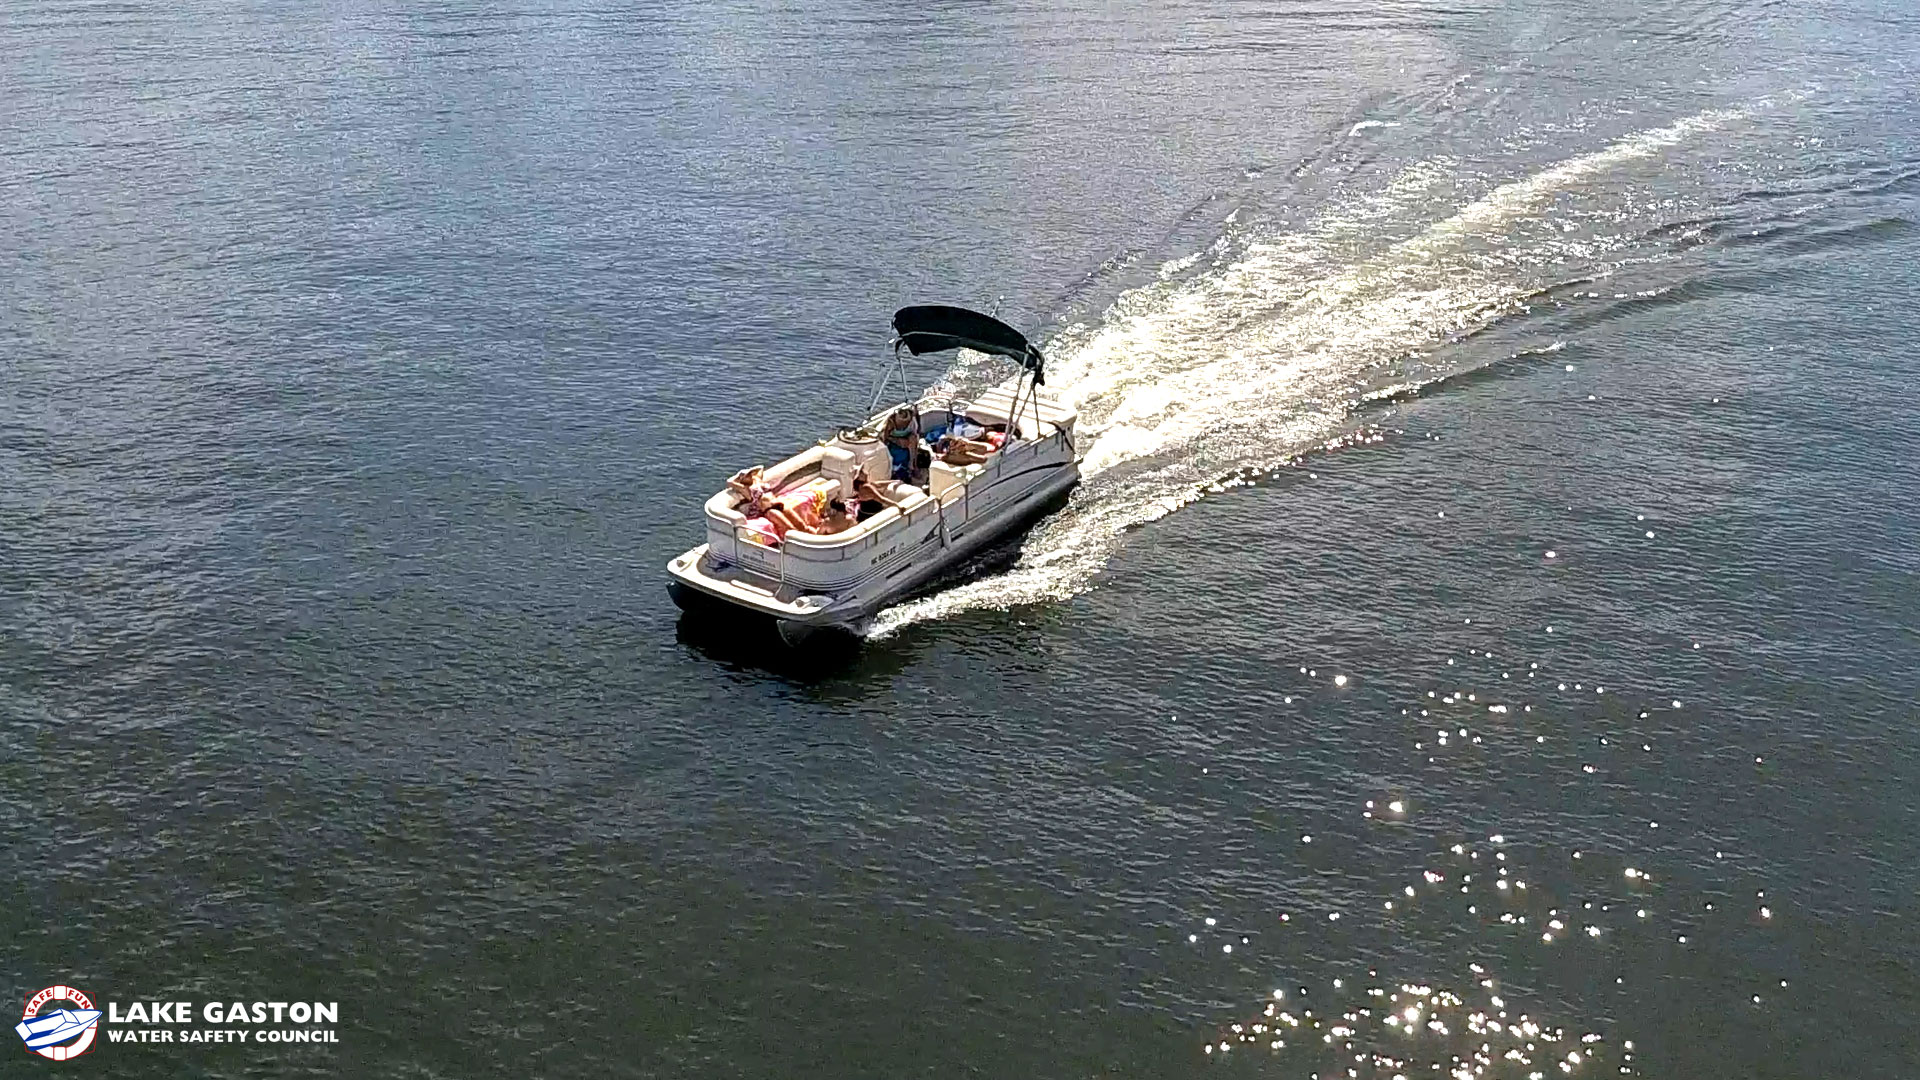 Lake Gaston Boating Safety Inspections and BLUE LIGHT LAW